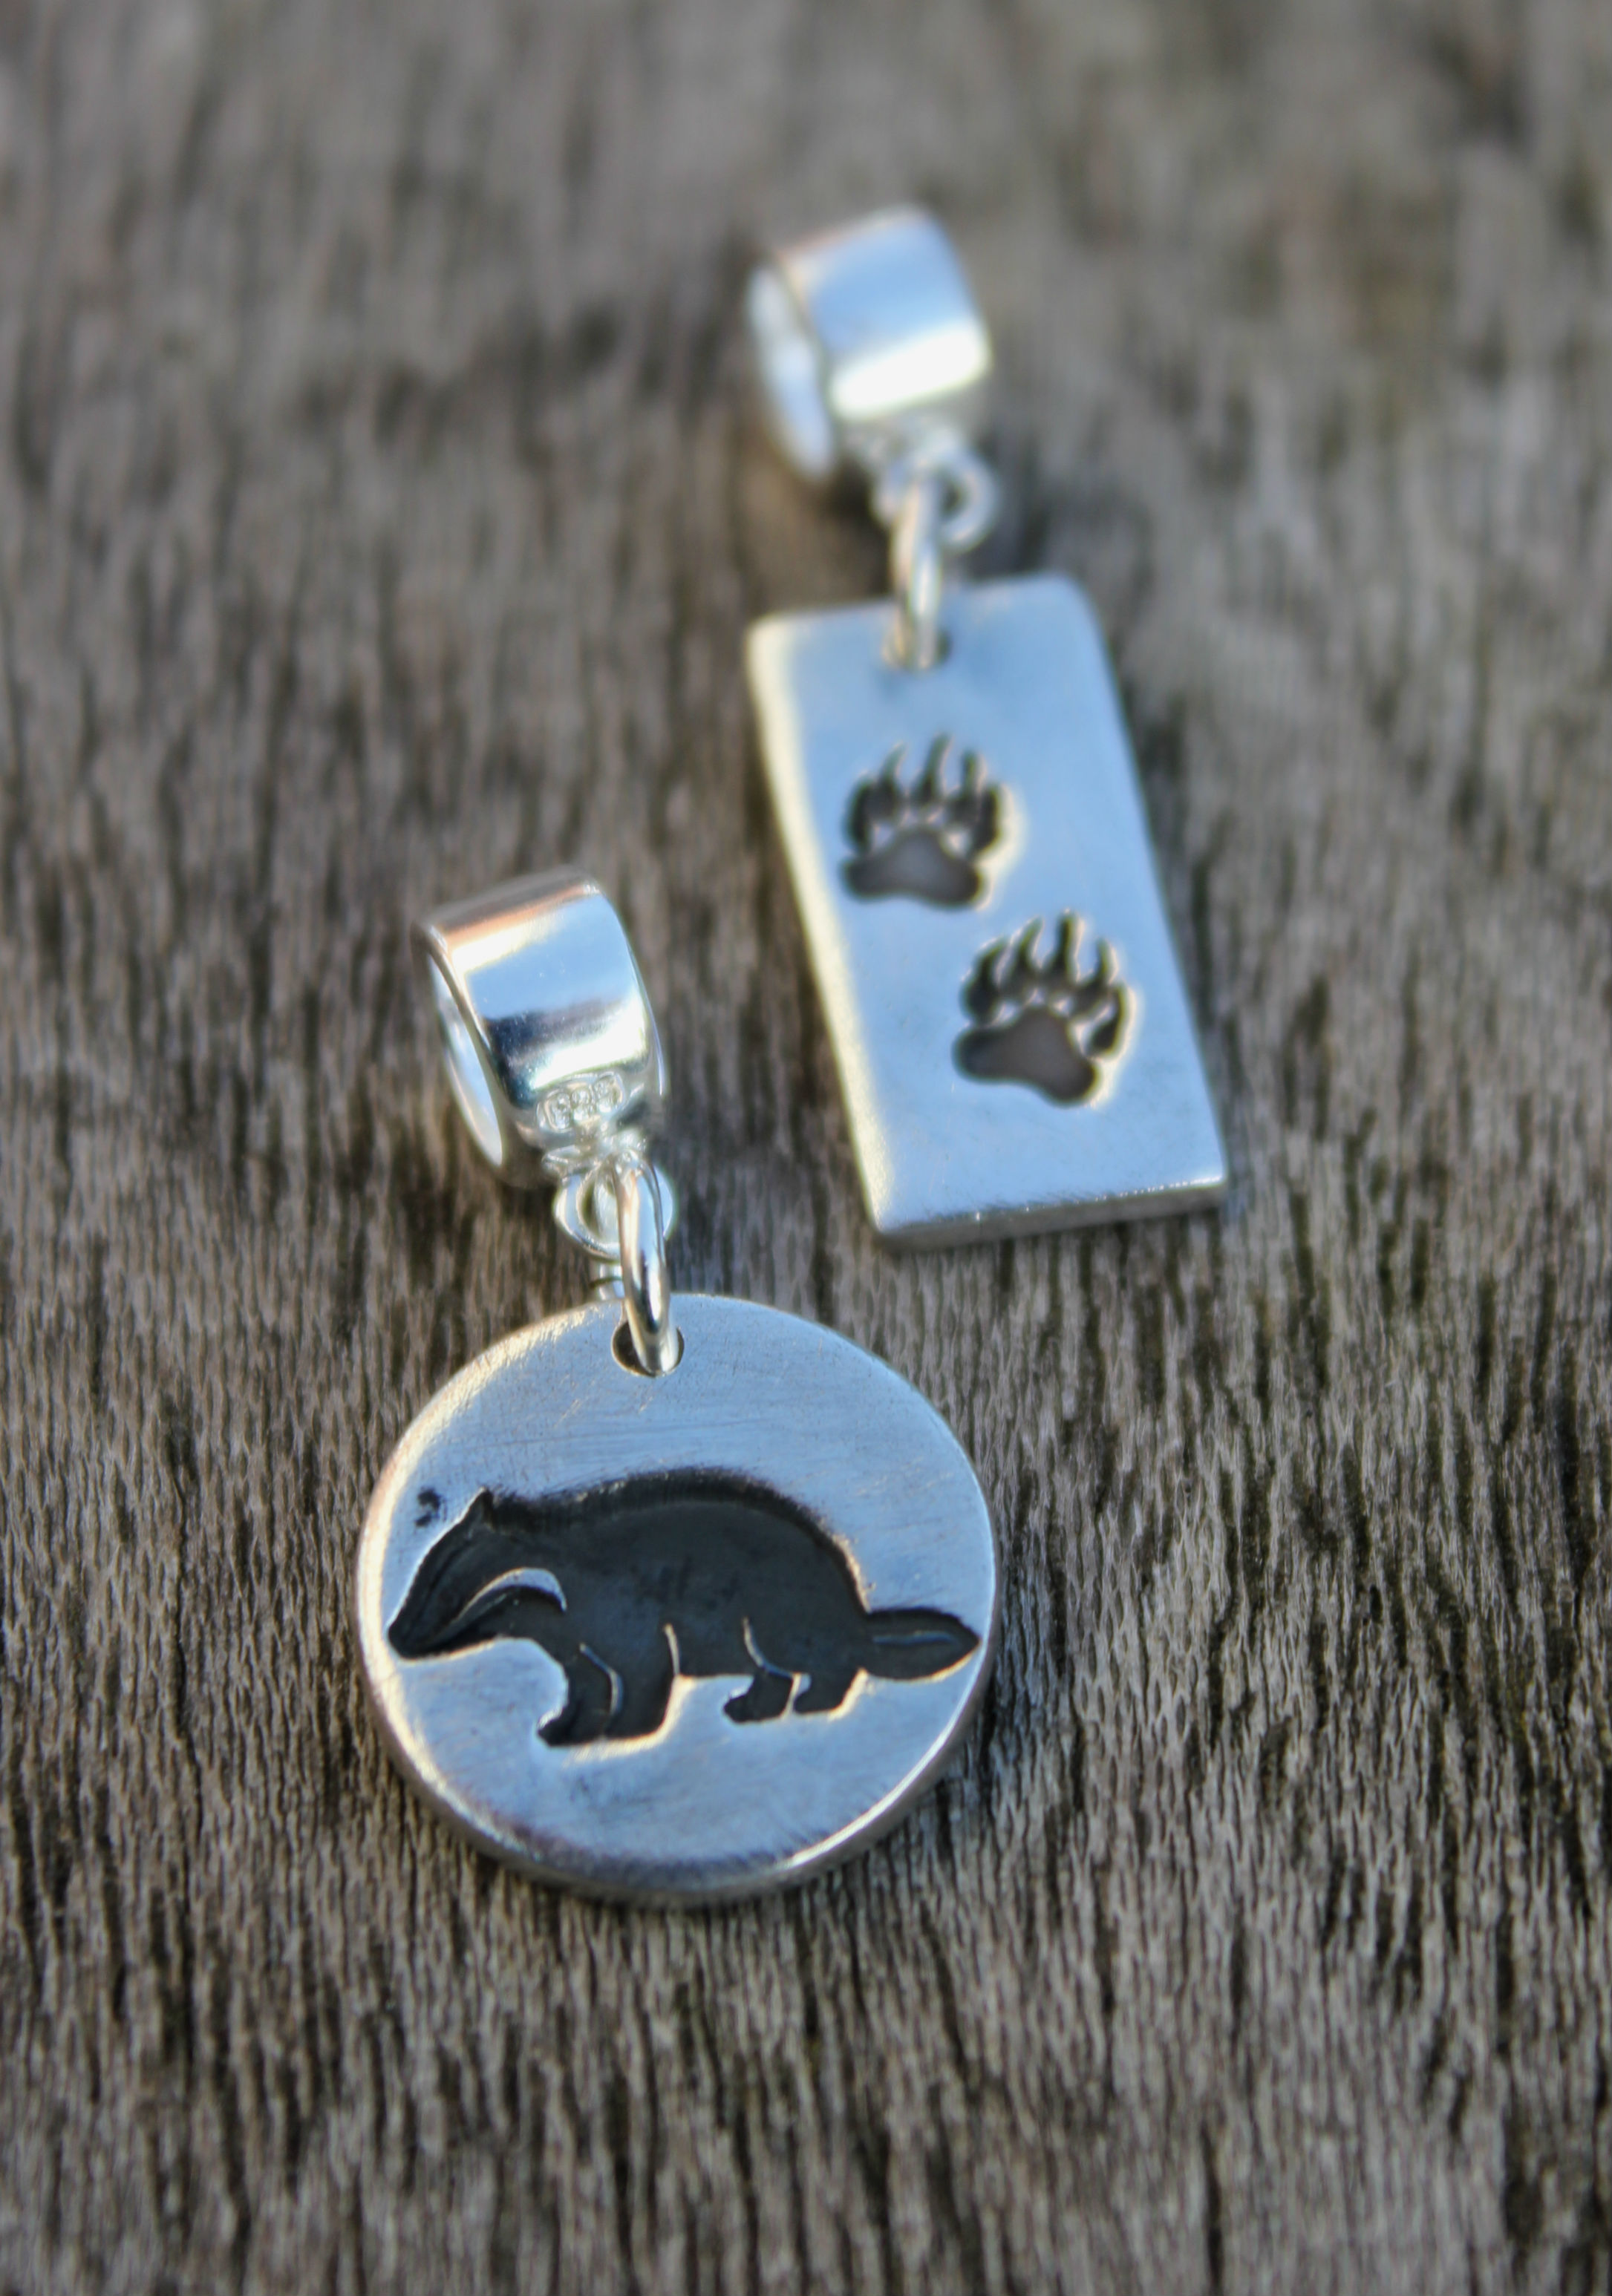 Badger charm and badger tracks charm.JPG